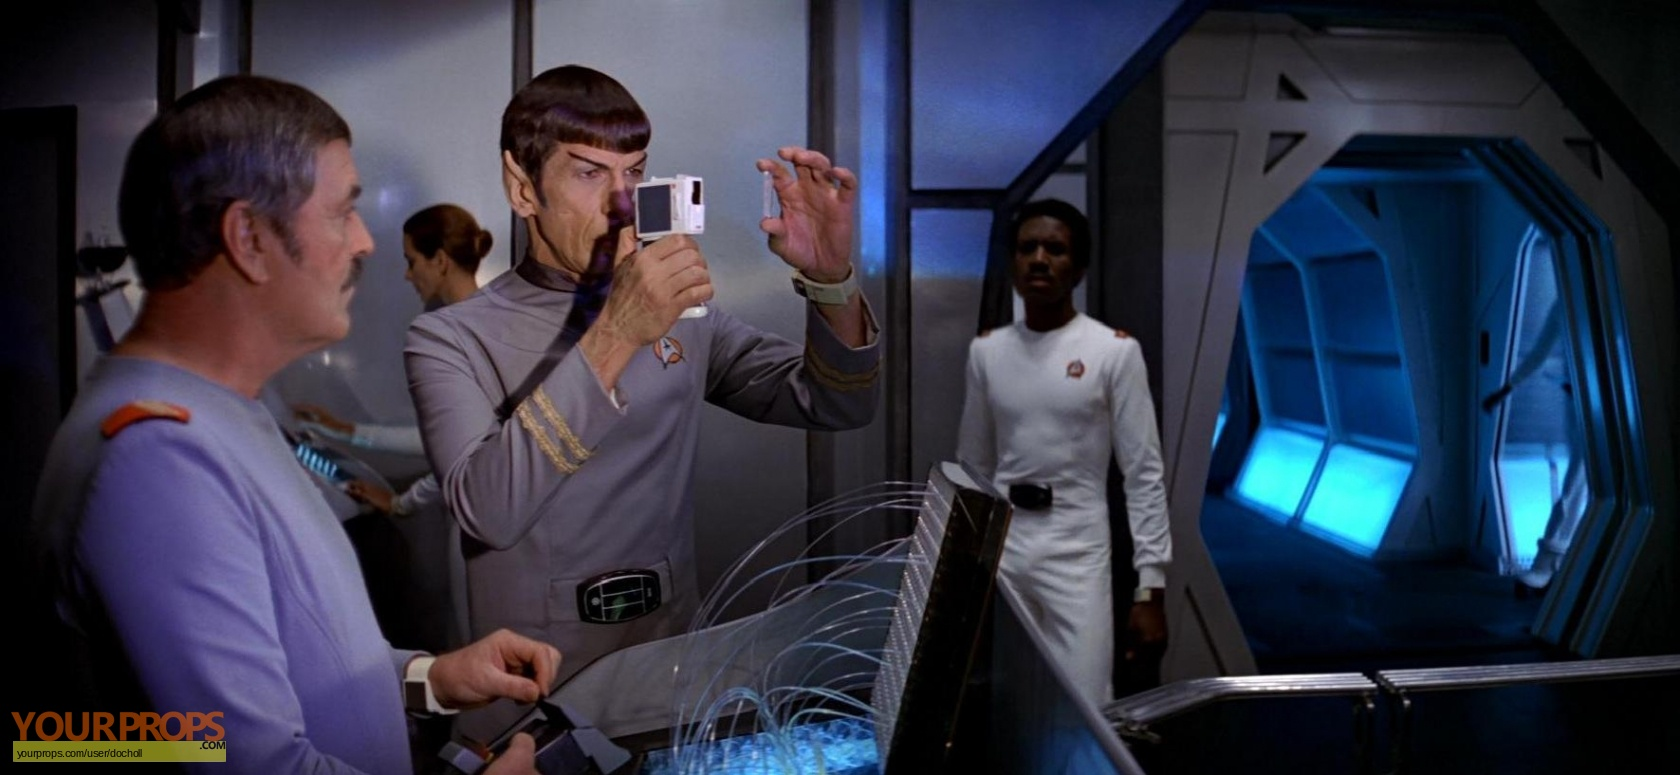 Star-Trek-The-Motion-Picture-Spock-s-Engineering-Tool-5.jpg